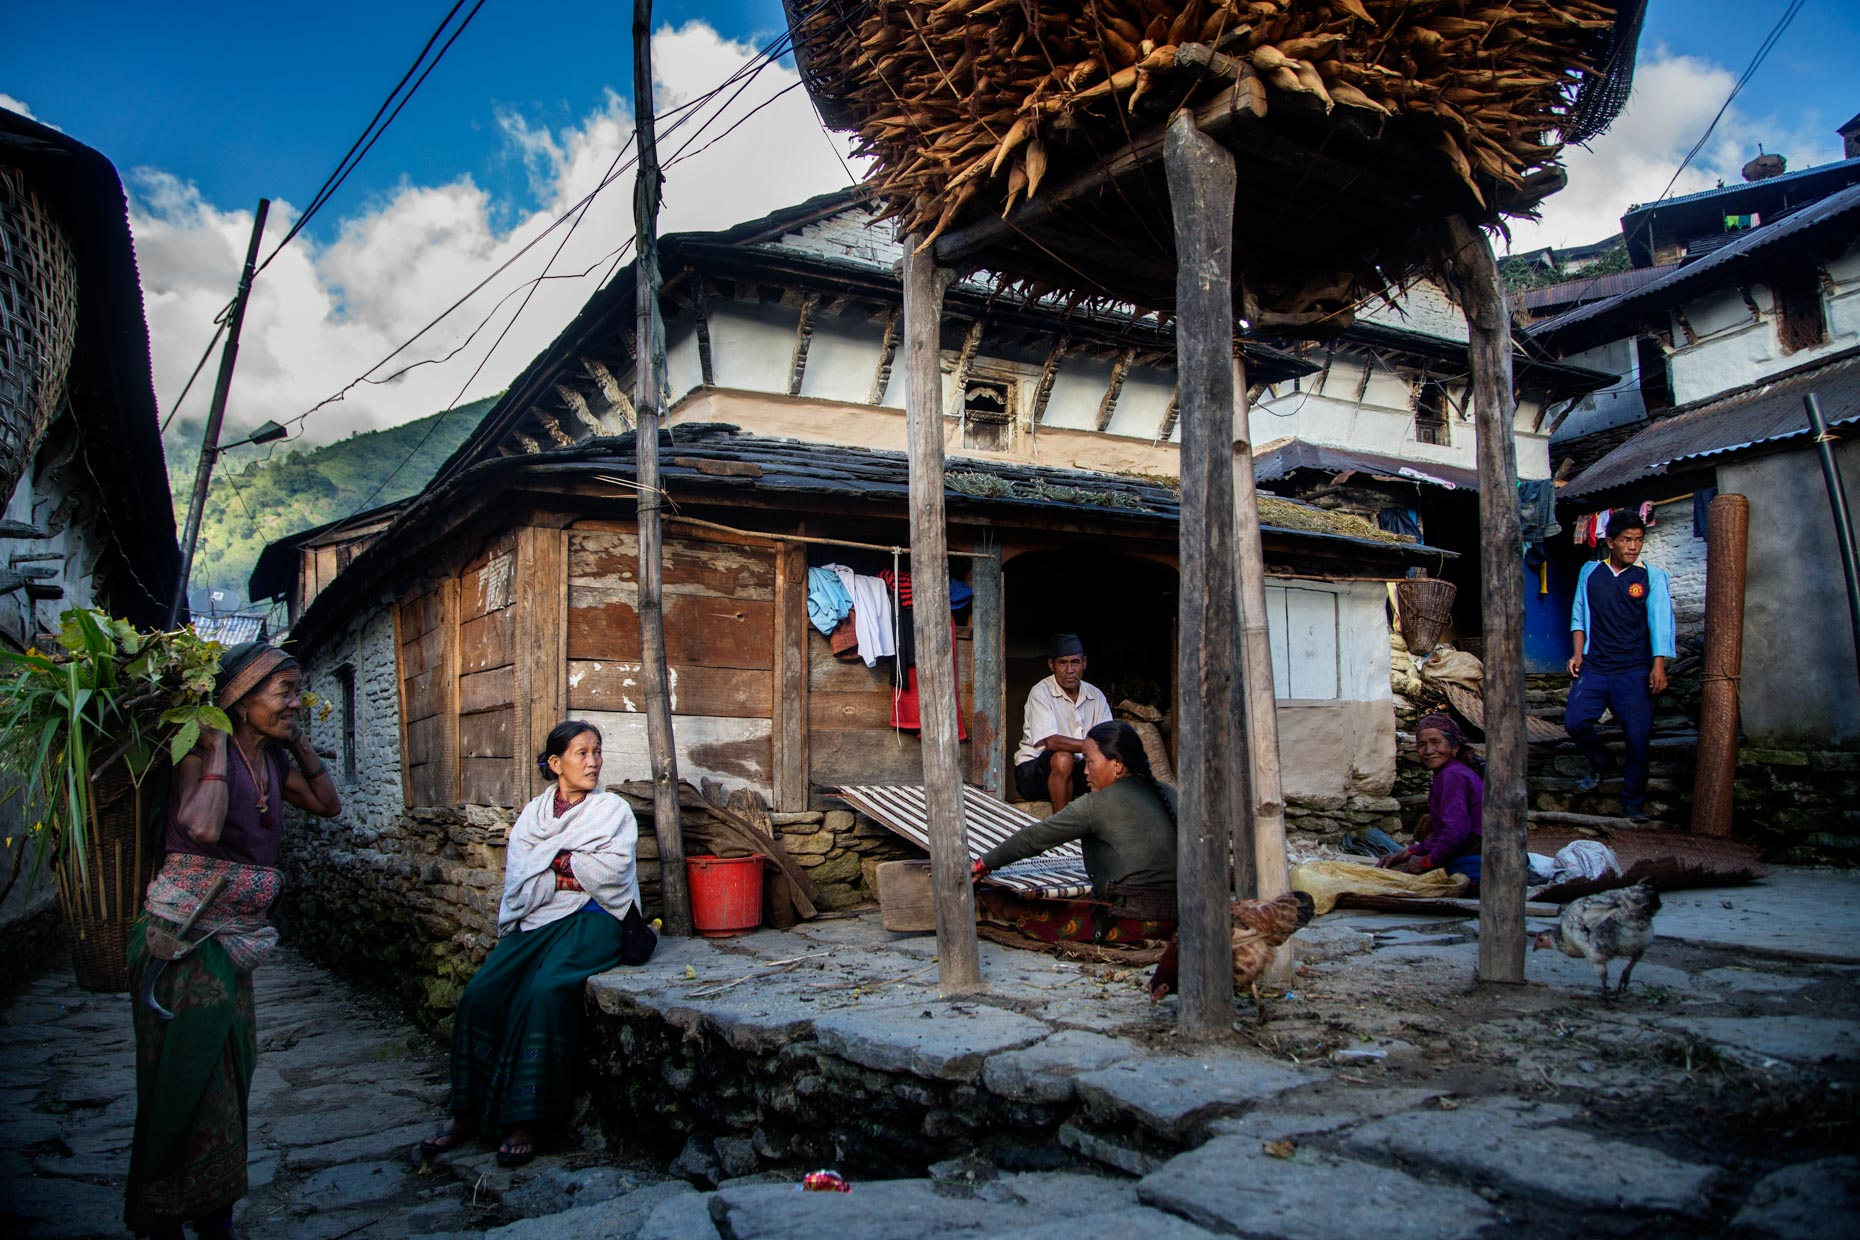 NEPAL_HONEY_LUFTHANSA_2014_10_16_30879